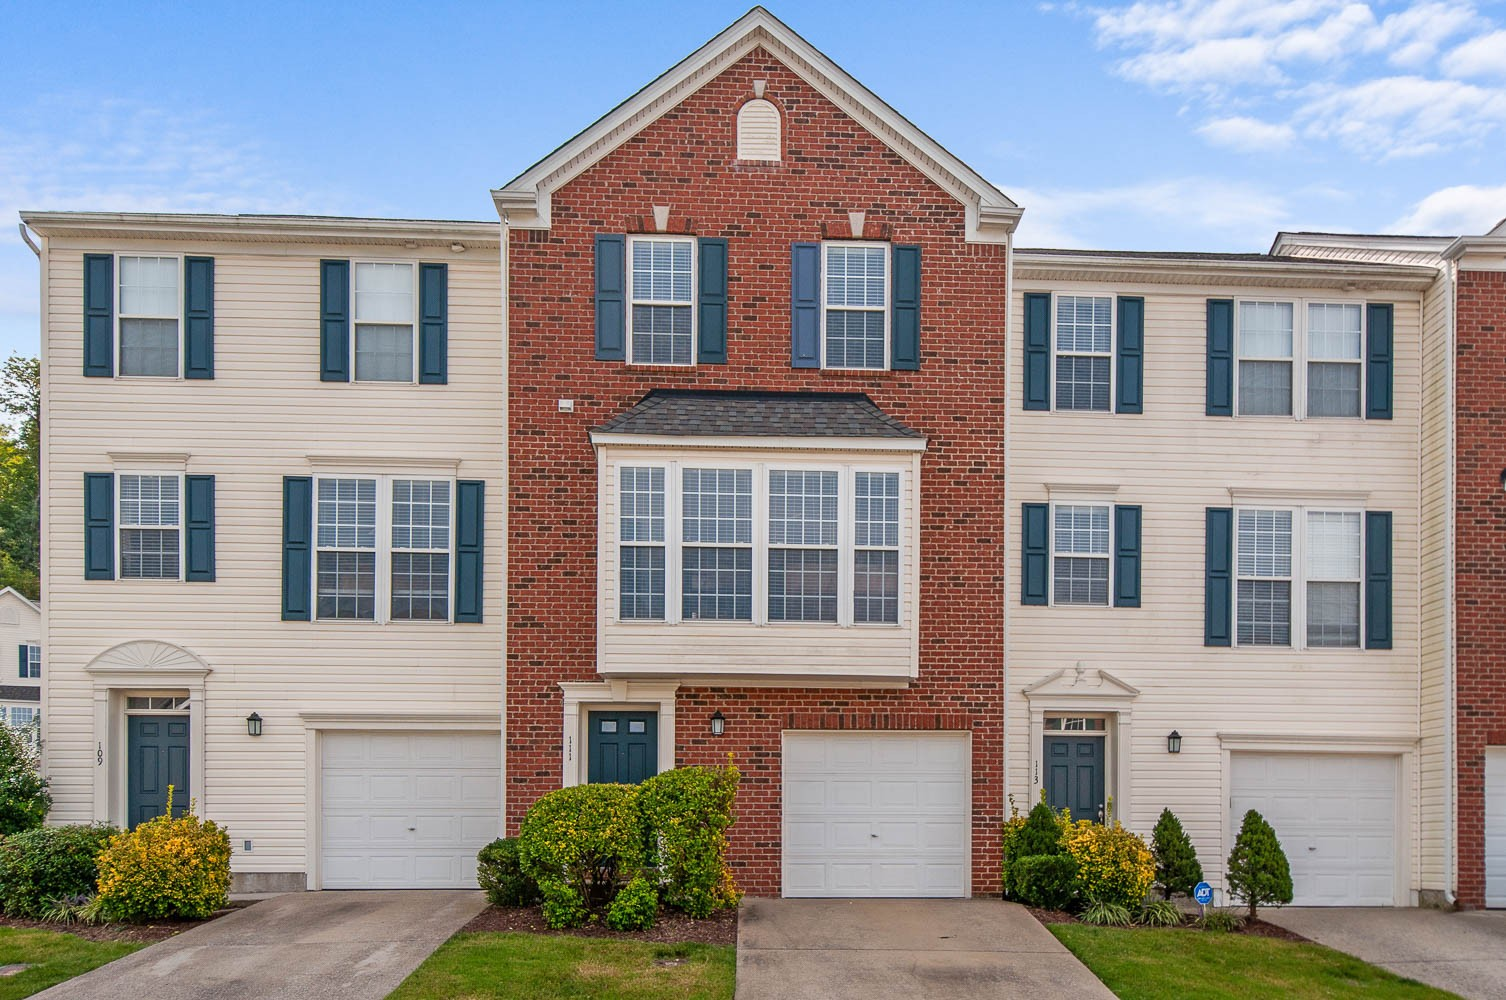 Like New Townhome with a 1-Car Garage and a Community Pool!  Brand New Carpet & Paint Throughout.  All Stainless Steel Appliances with a Brand New Refrigerator that Stays.  HVAC only 3 years old!  2 Master Bedroom Suites Upstairs! Perfect Location- Home is Walking Distance to Tailgate Brewery & Very Close to One Bellevue Place, Nashville West, and Interstate Access!  Come See Today!